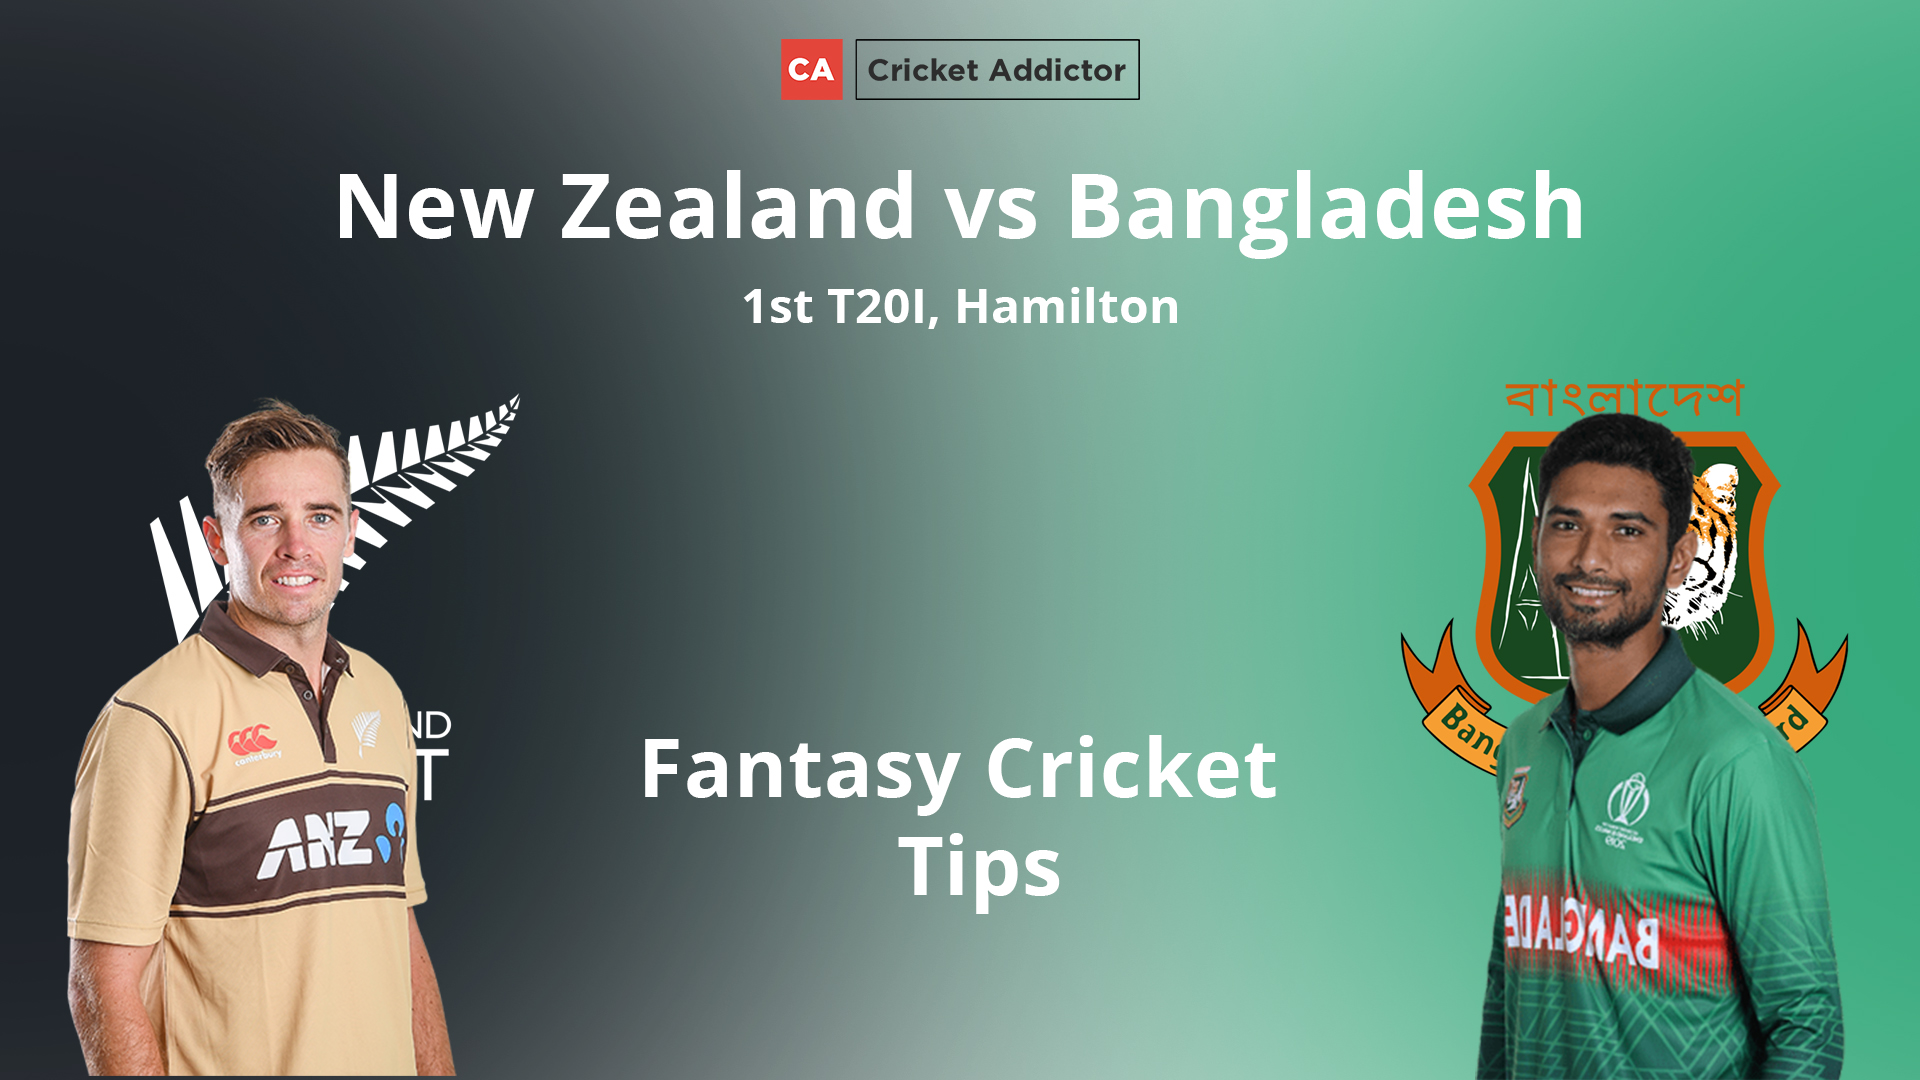 New Zealand vs Bangladesh 1st T20I Dream11 Prediction, Fantasy Cricket Tips, Playing XI, Pitch Report, Dream11 Team, Injury Update.